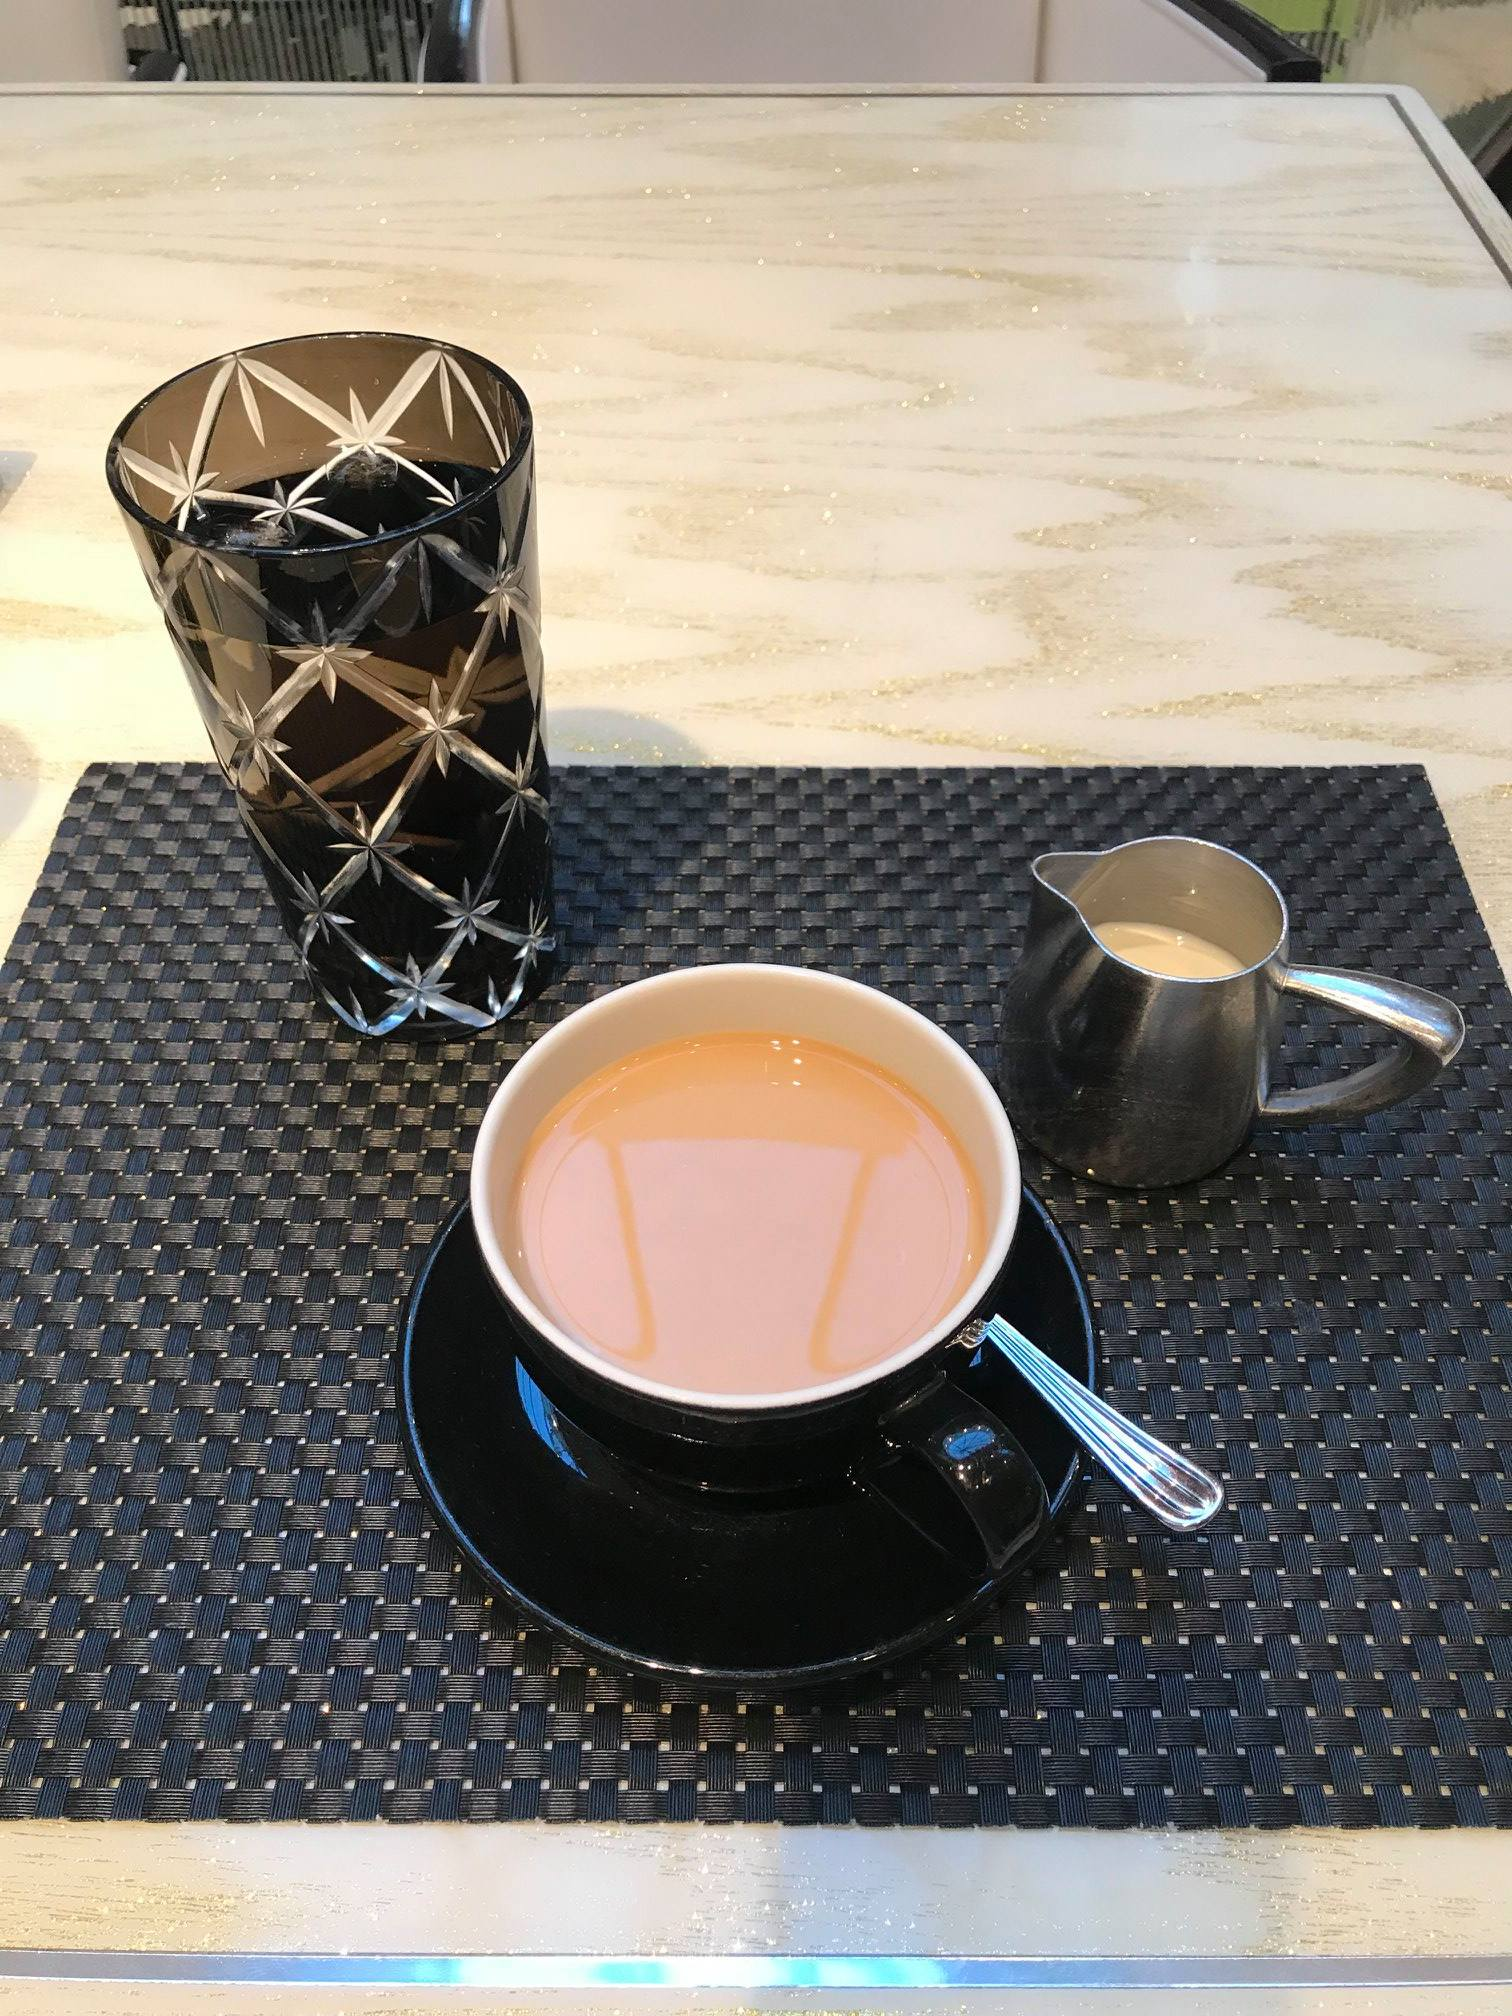 Photograph of coffee and glassware